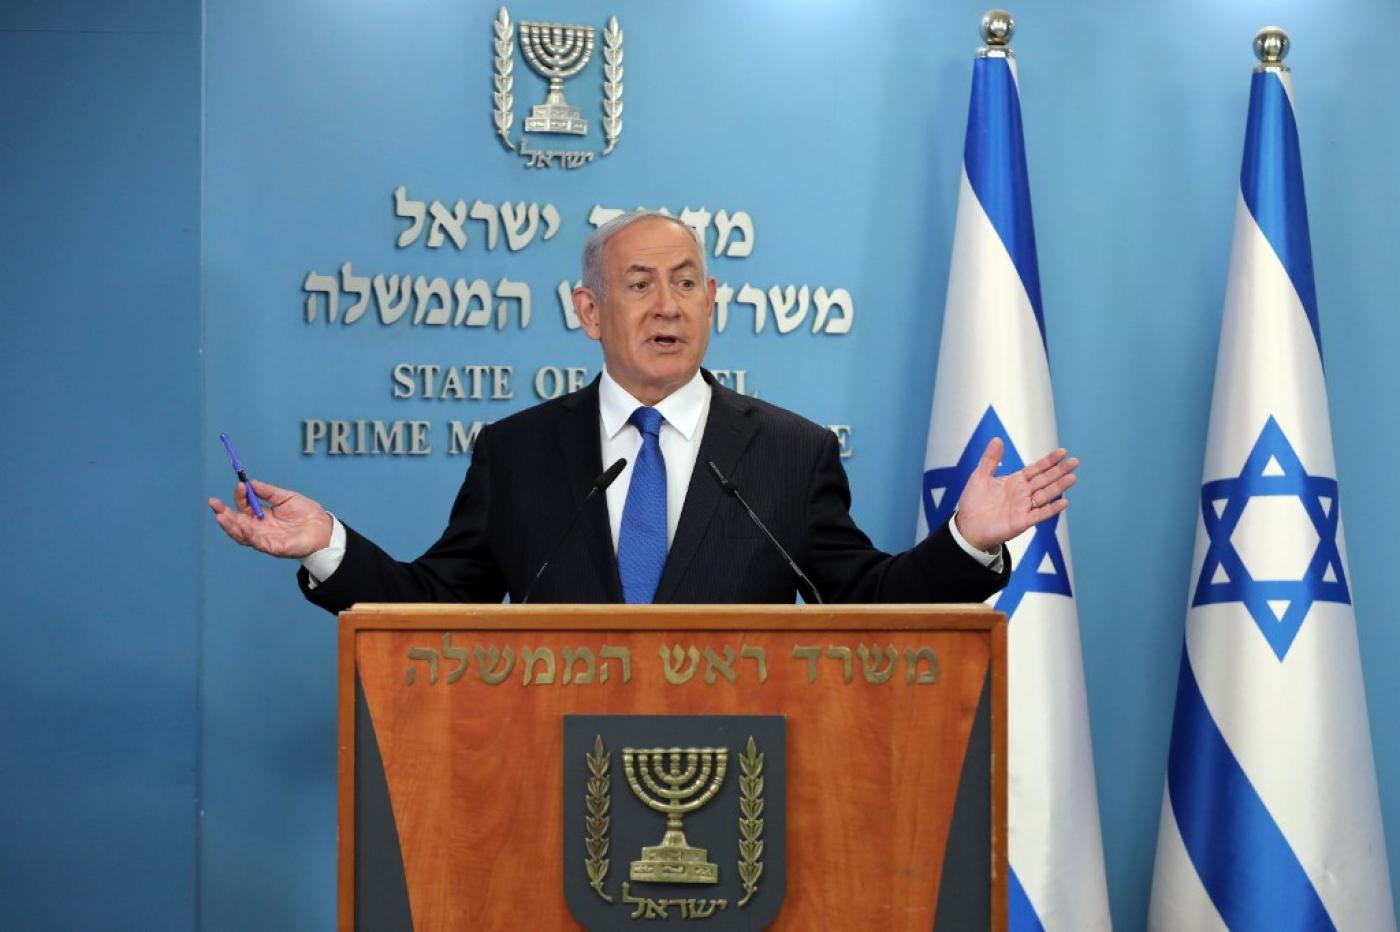 Israel will not cooperate with ICC probe, government says